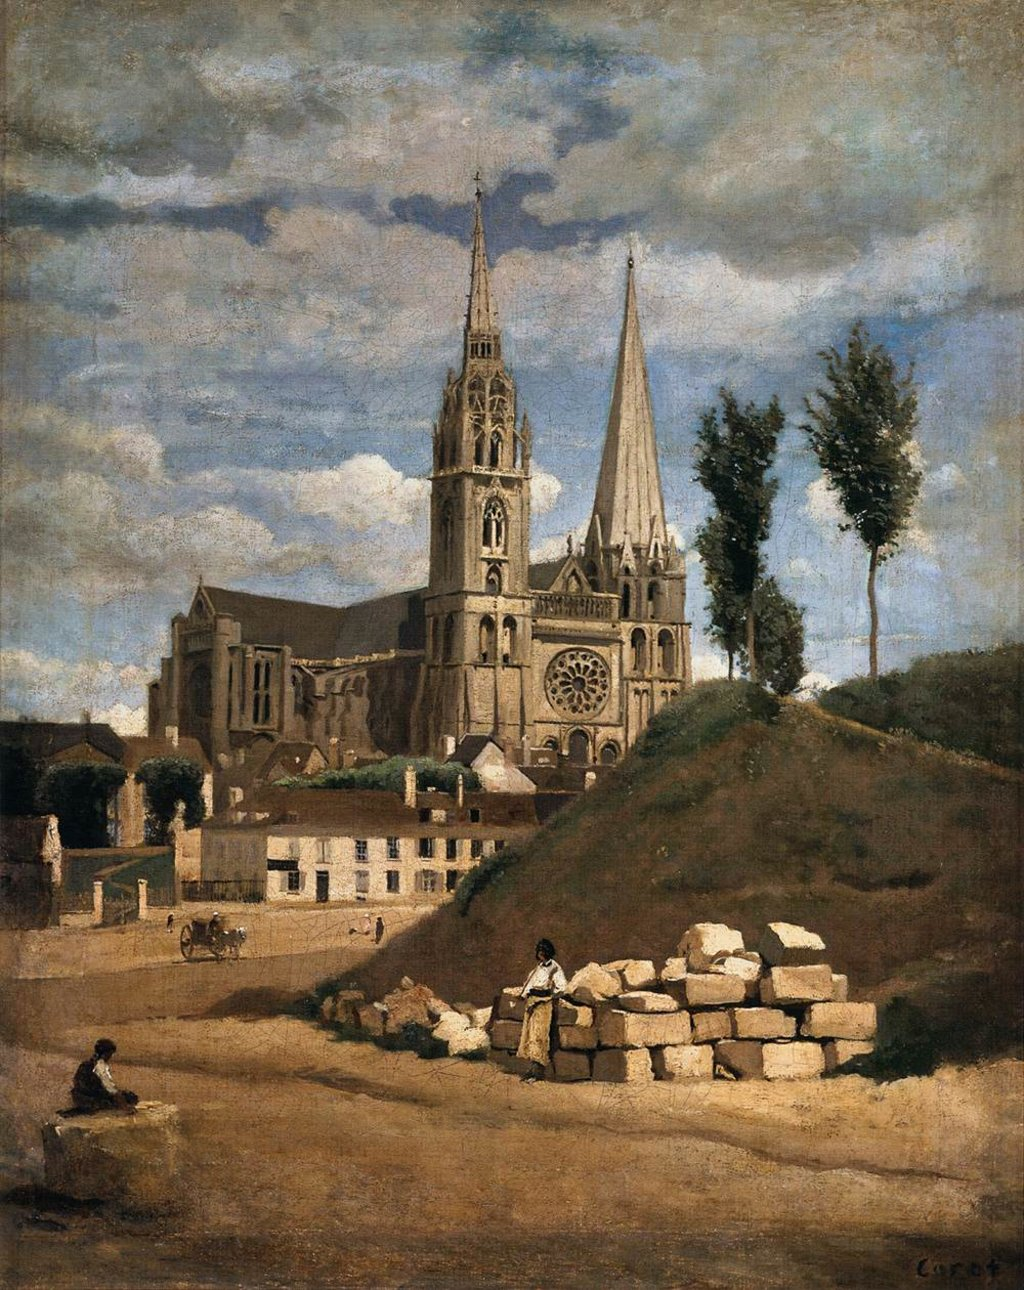 Jean-Baptiste-Camille_Corot_-_The_Cathedral_of_Chartres_-_WGA5282.jpg?1550225396